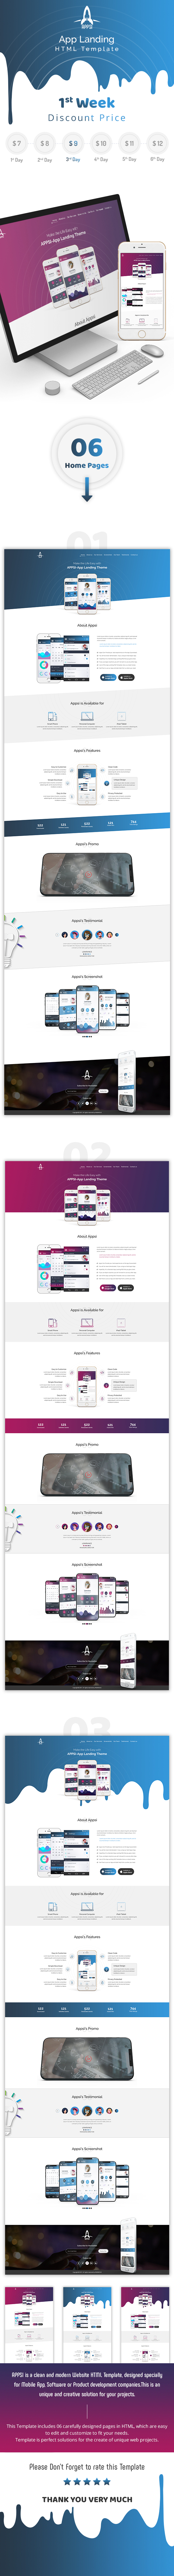 Demo_page_HTML_3rd